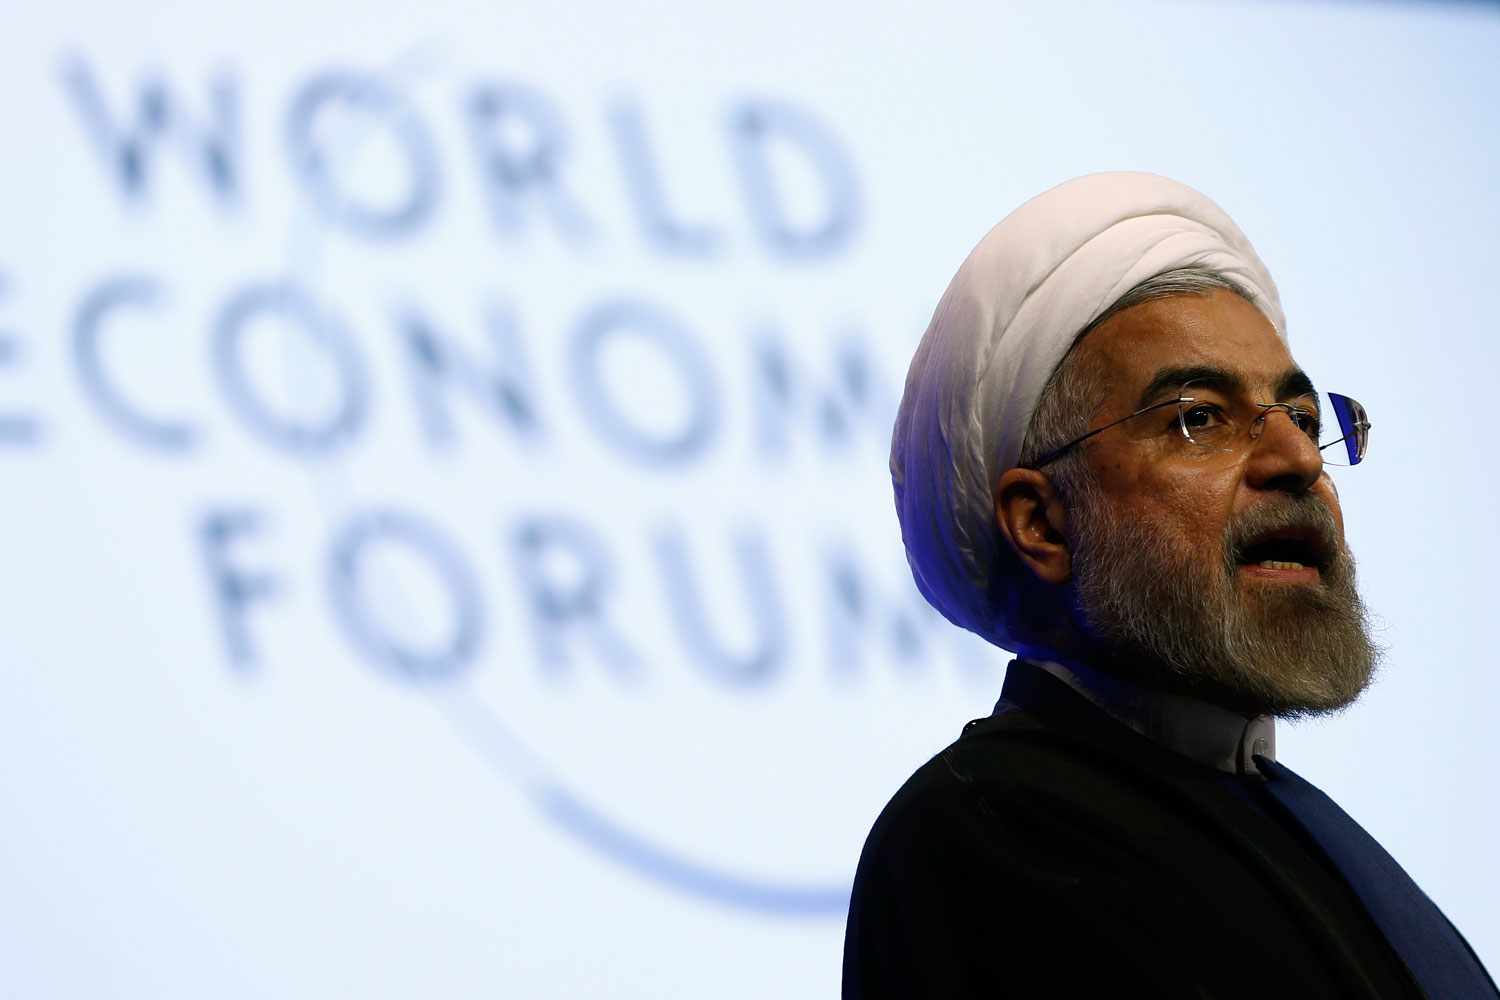 Iran's President Hassan Rouhani speaks during a session at the annual meeting of the World Economic Forum in Davos, Switzerland, on Jan. 23, 2014